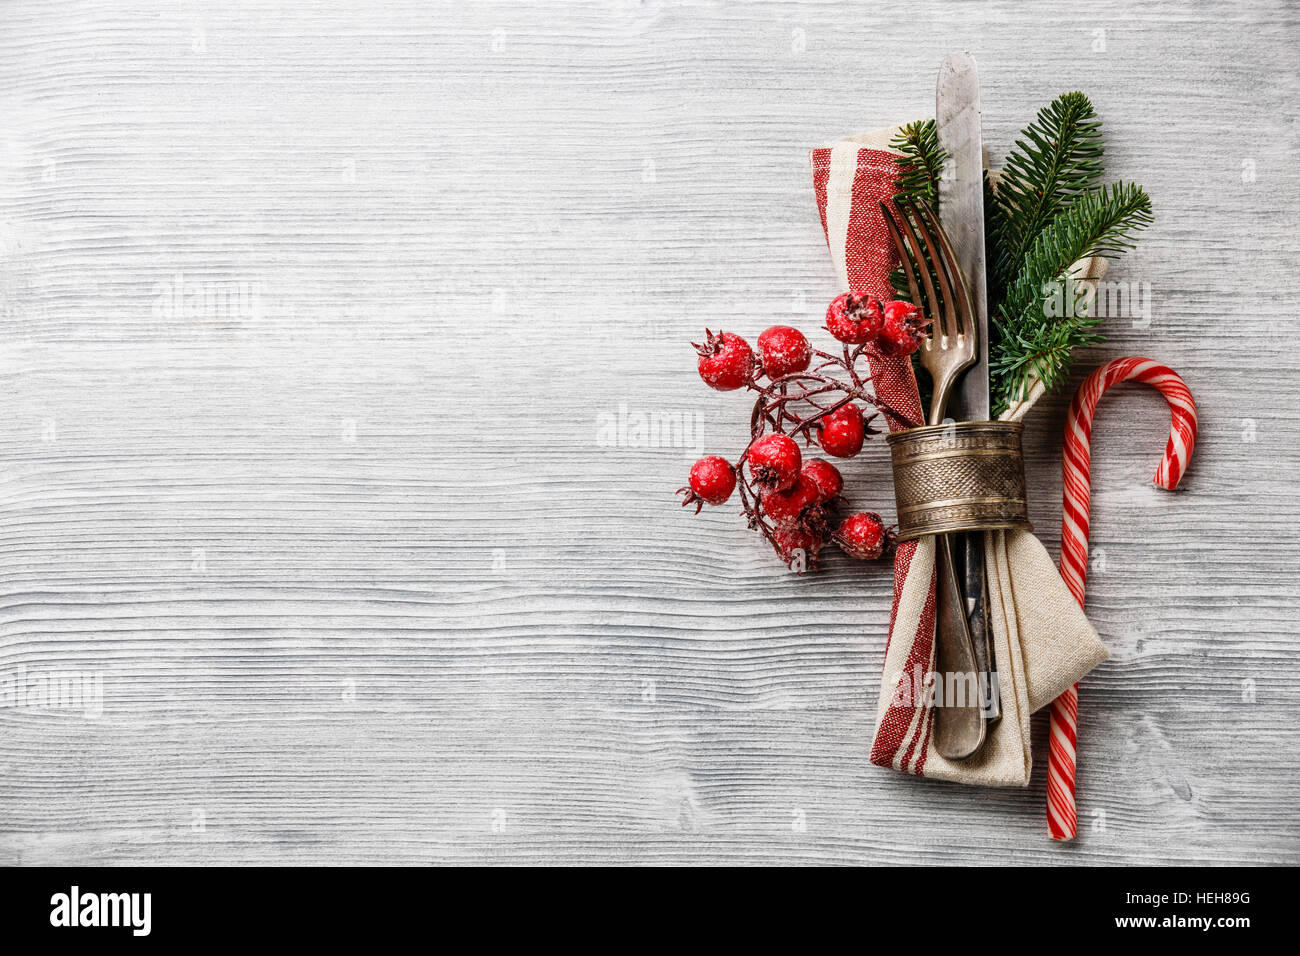 Table fork and knife set with napkin, christmas fir branch, red berries and napkin ring on gray wooden background - Stock Image